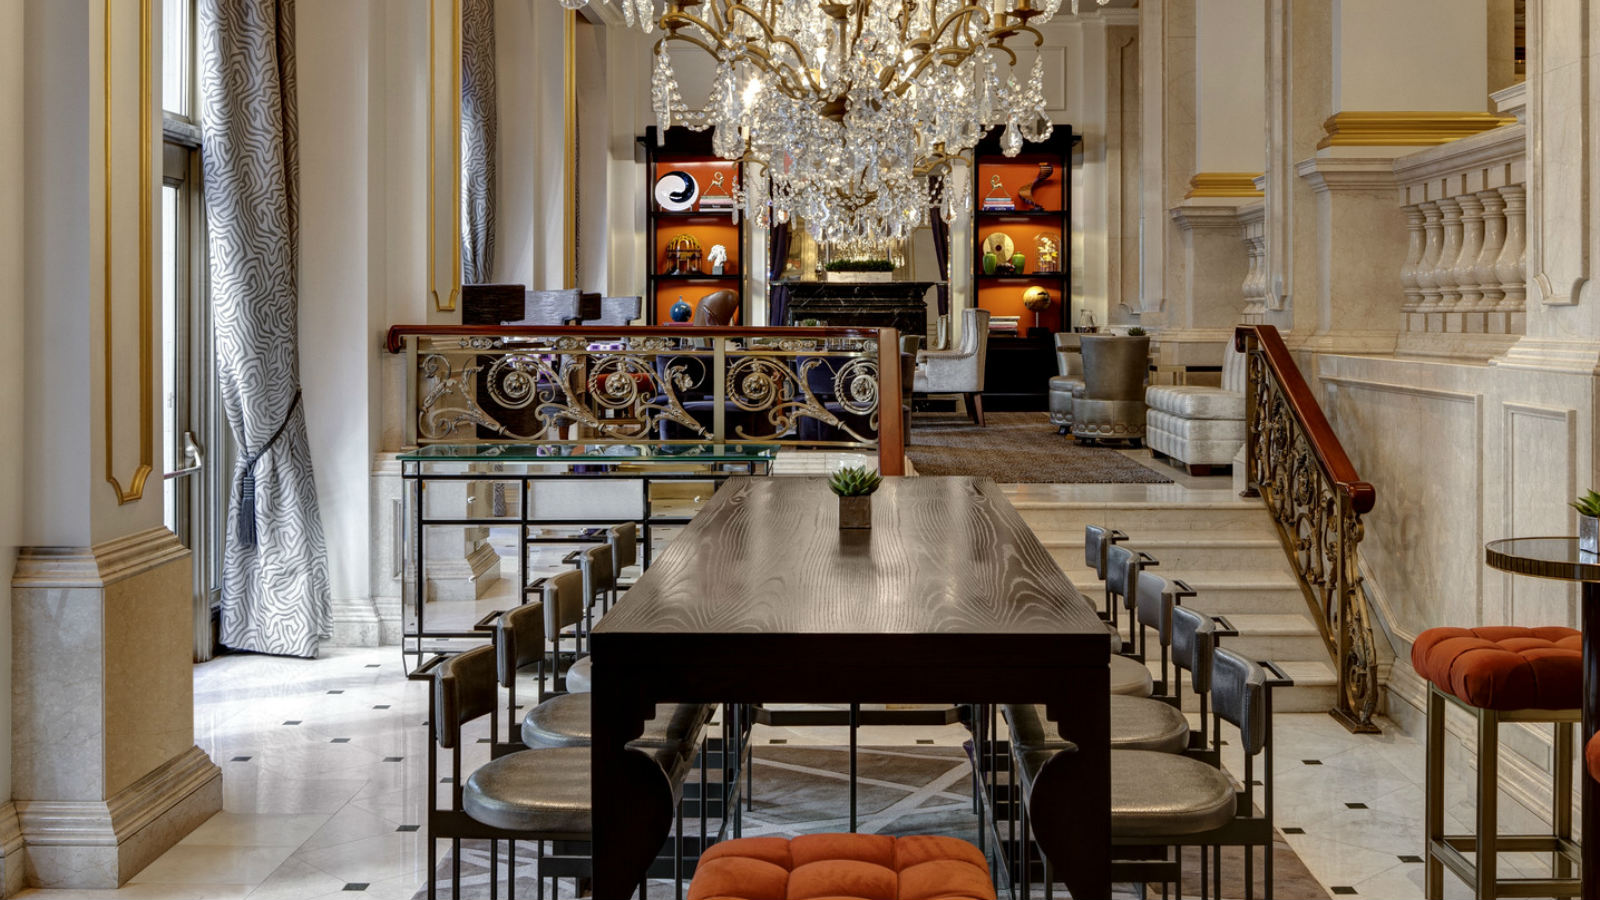 Afternoon Tea NYC - King Cole Bar Communal Table - The St. Regis New York